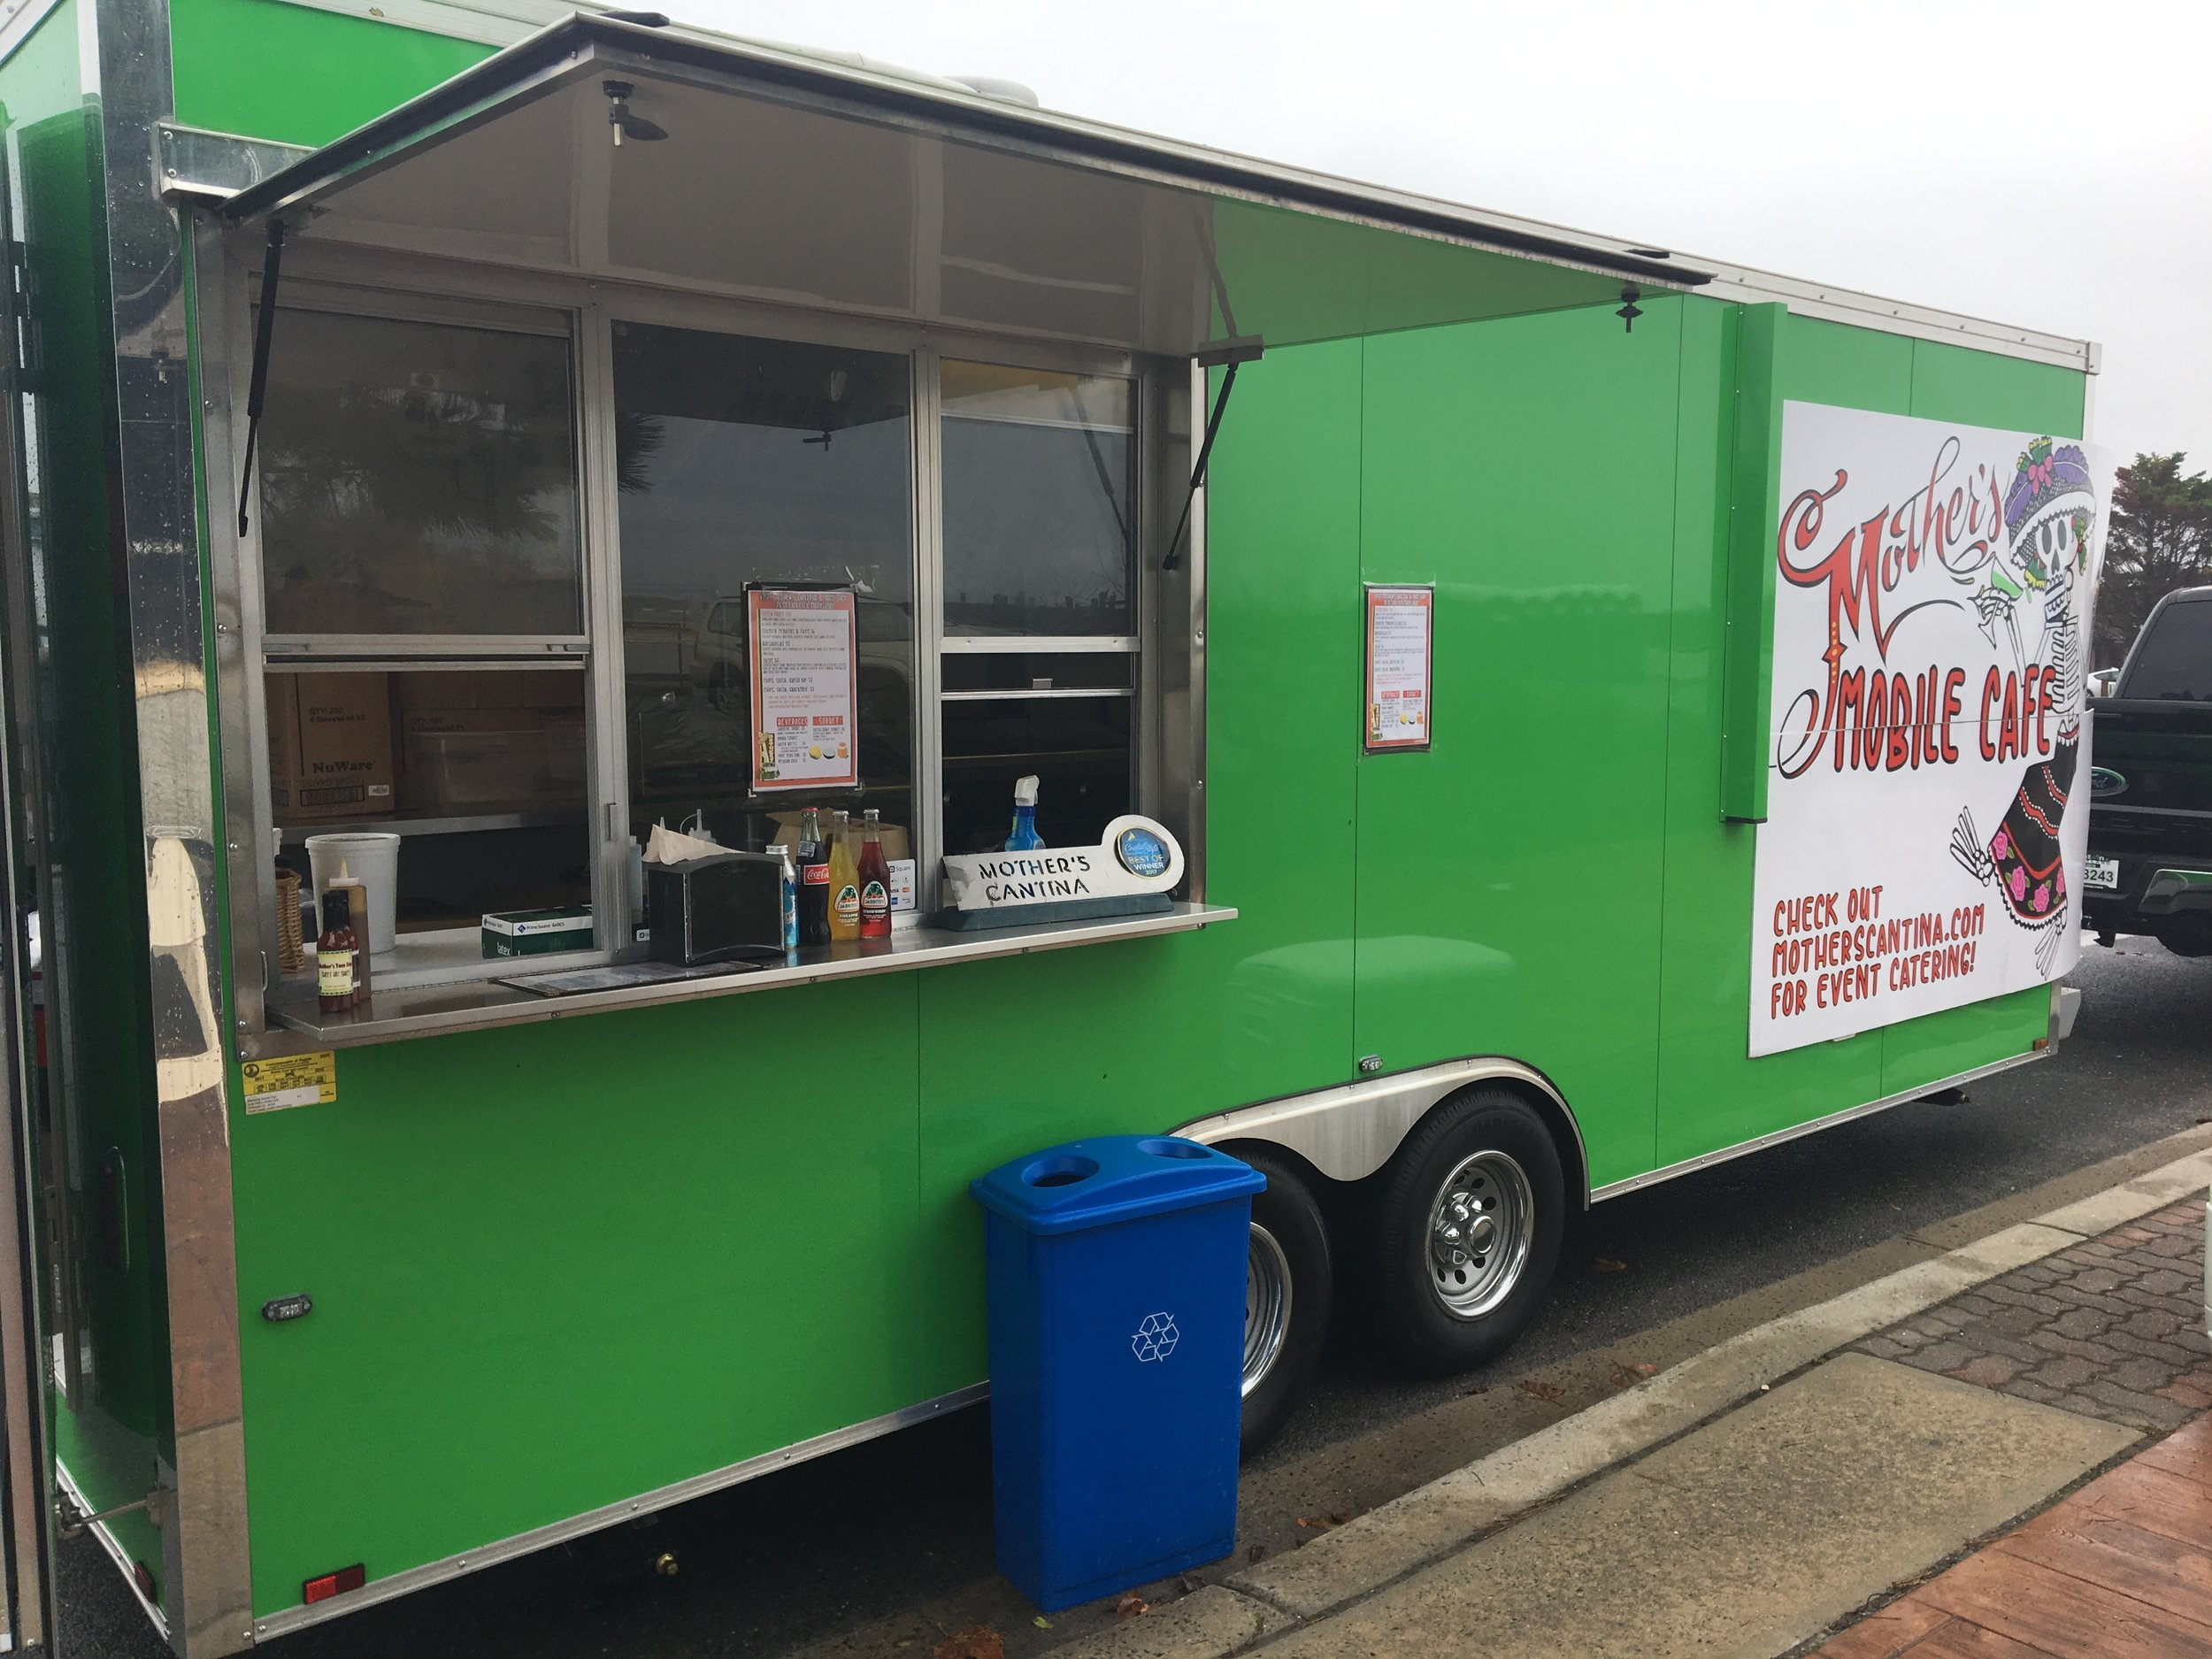 mothers catering company food truck